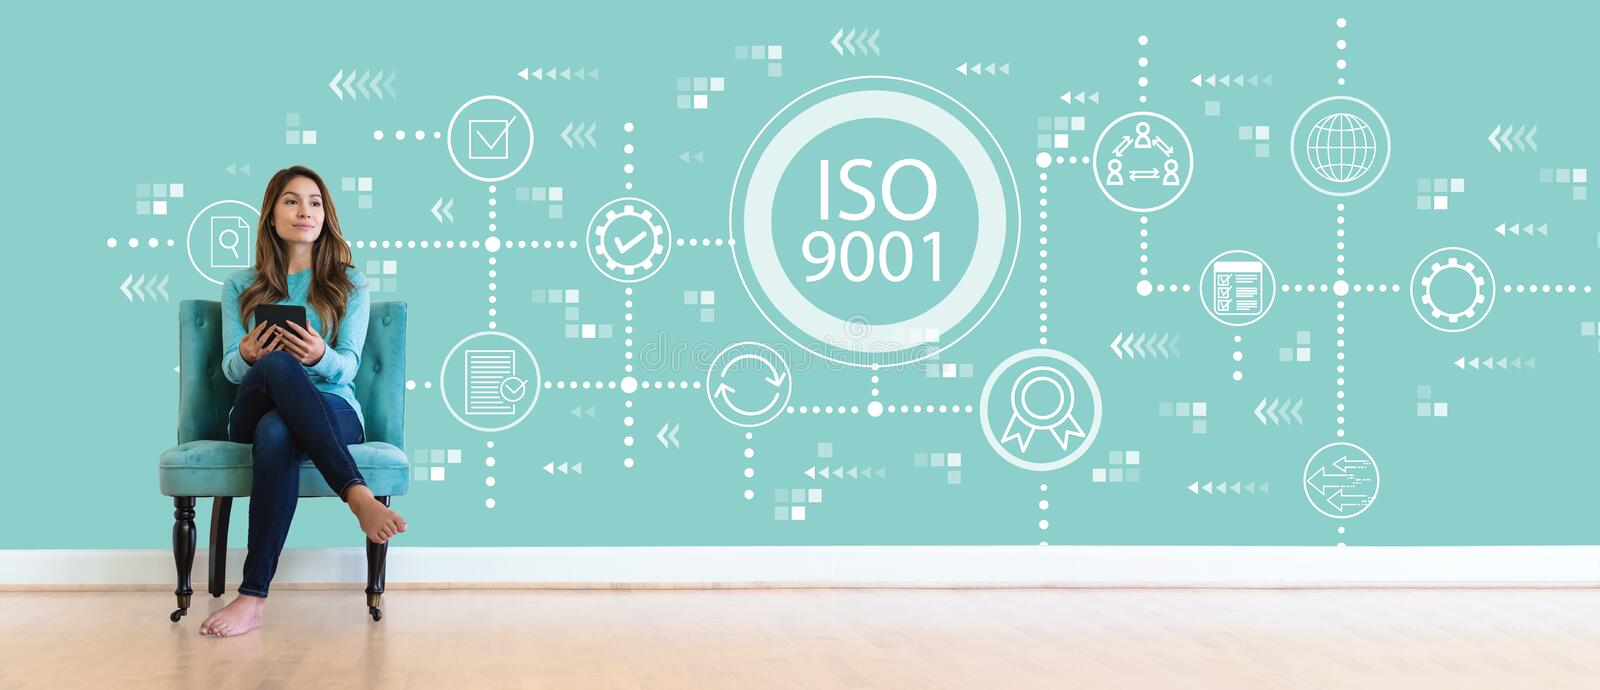 ISO 9001 with young woman royalty free stock image